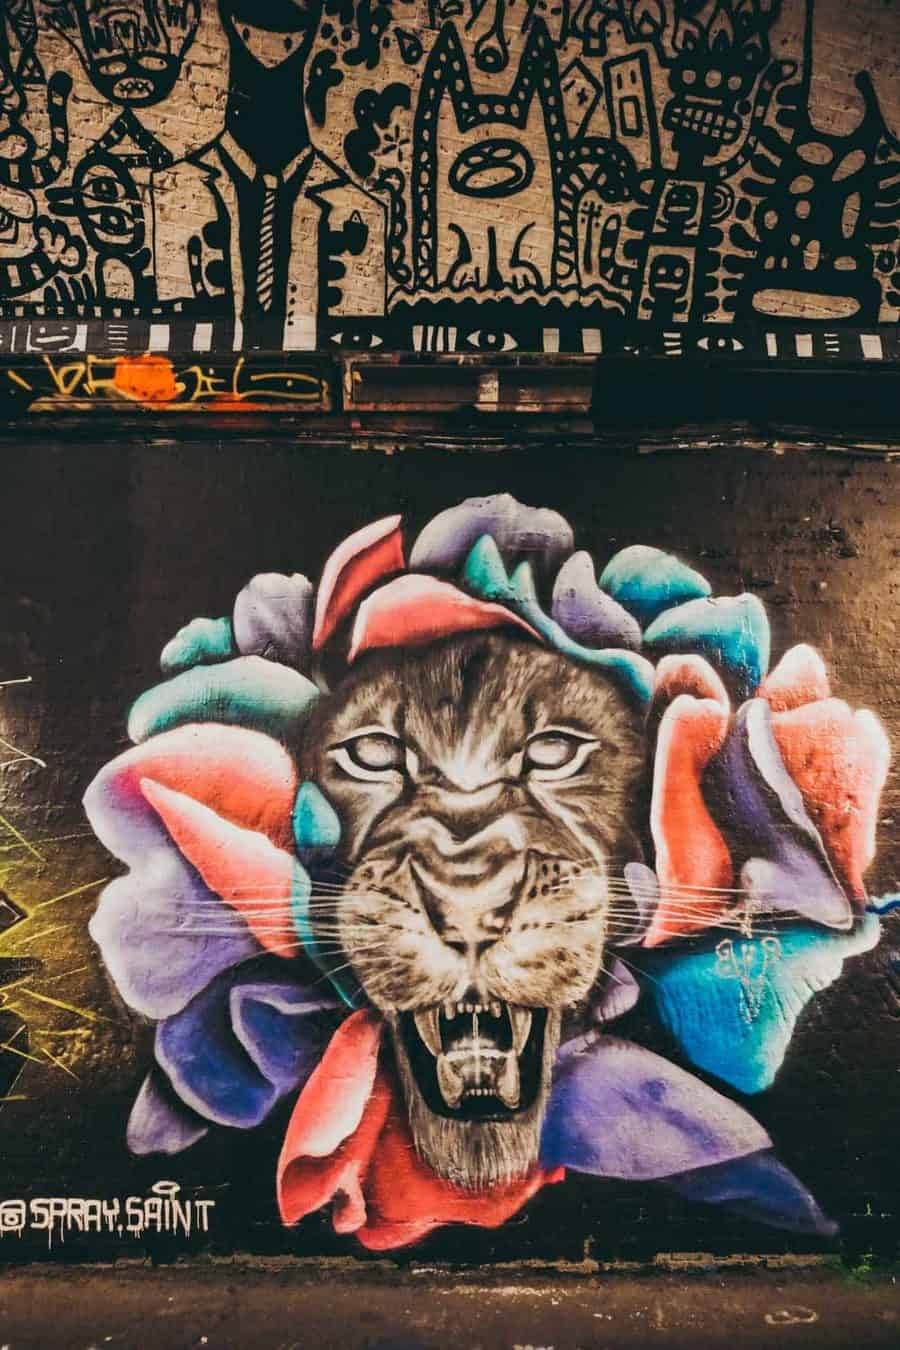 Cool street art in the Graffiti Tunnel London